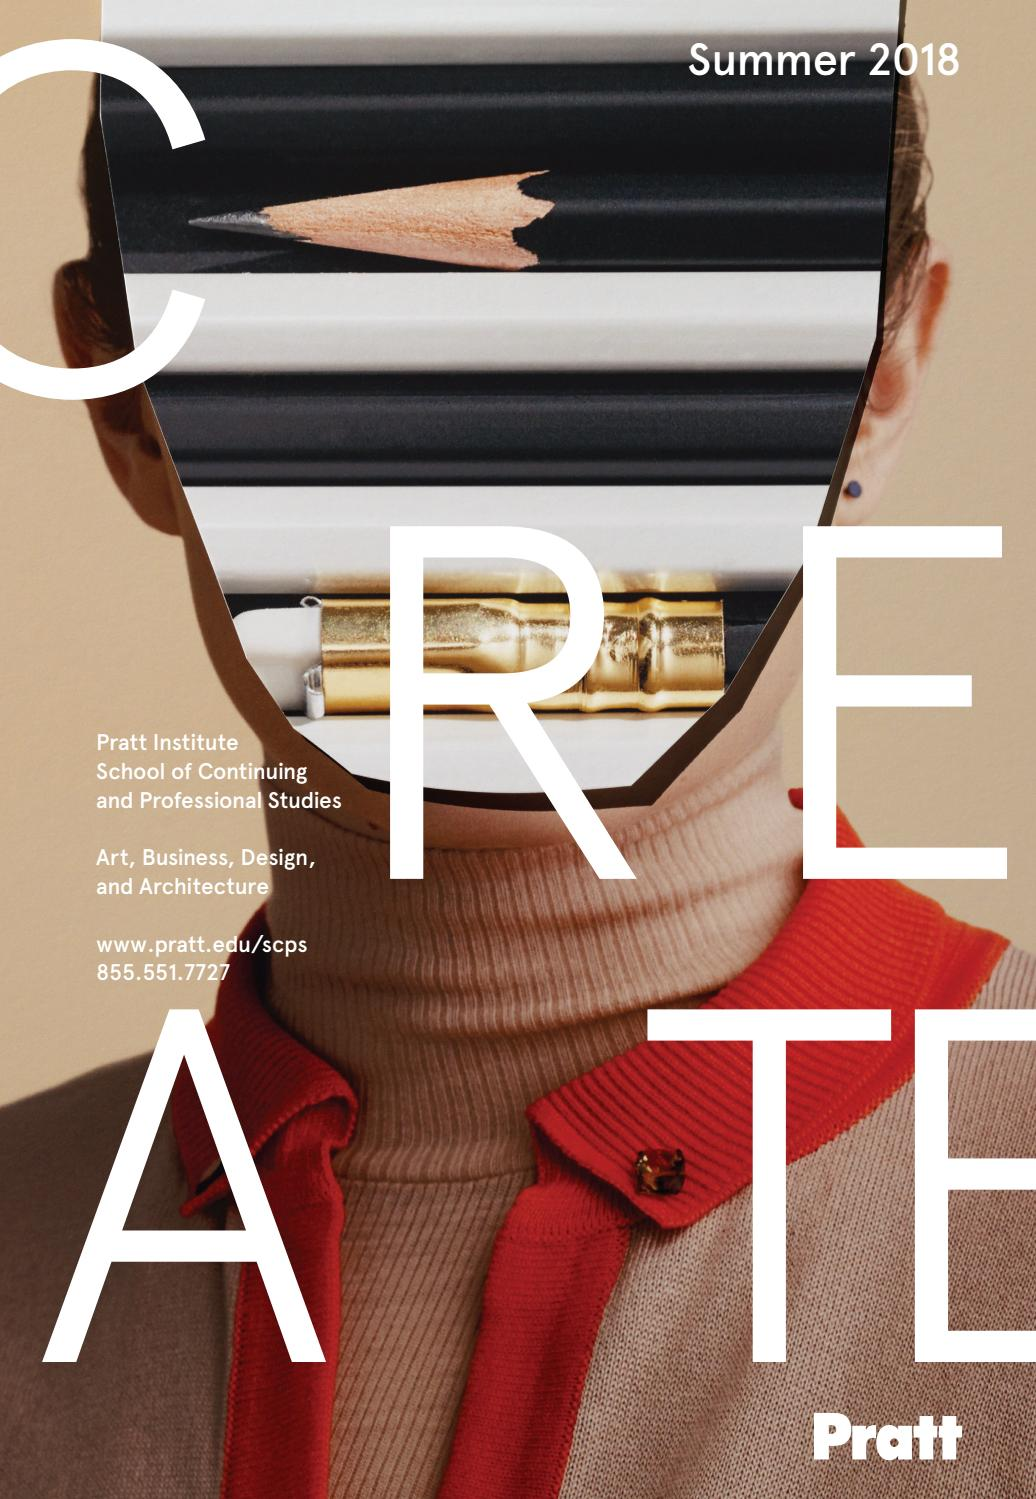 Pratt Institute Scps Summer 2018 Guide By Pratt Institute Issuu